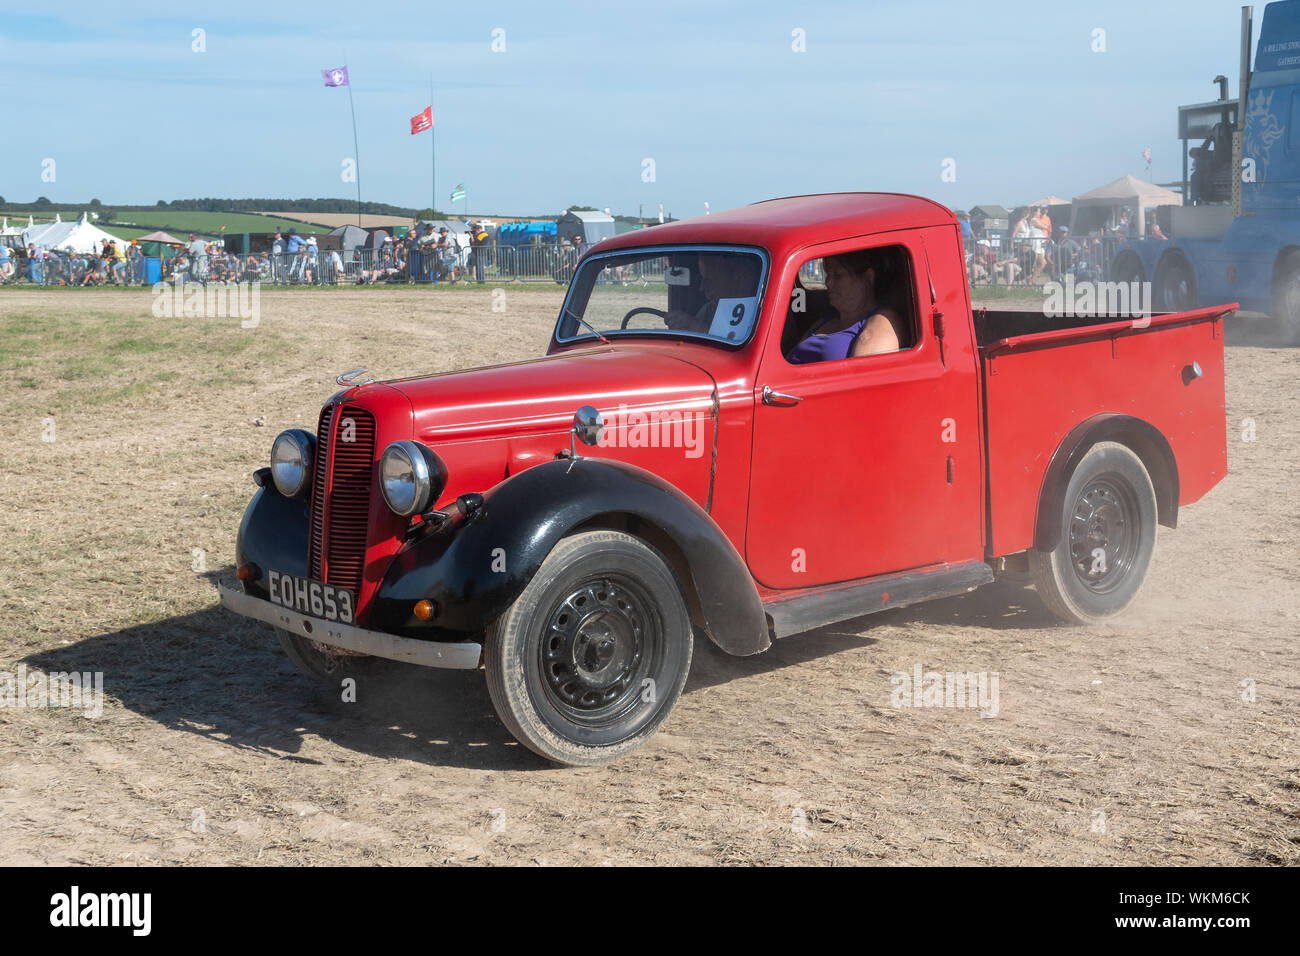 Vintage Truck Photography High Resolution Stock Photography And Images Alamy